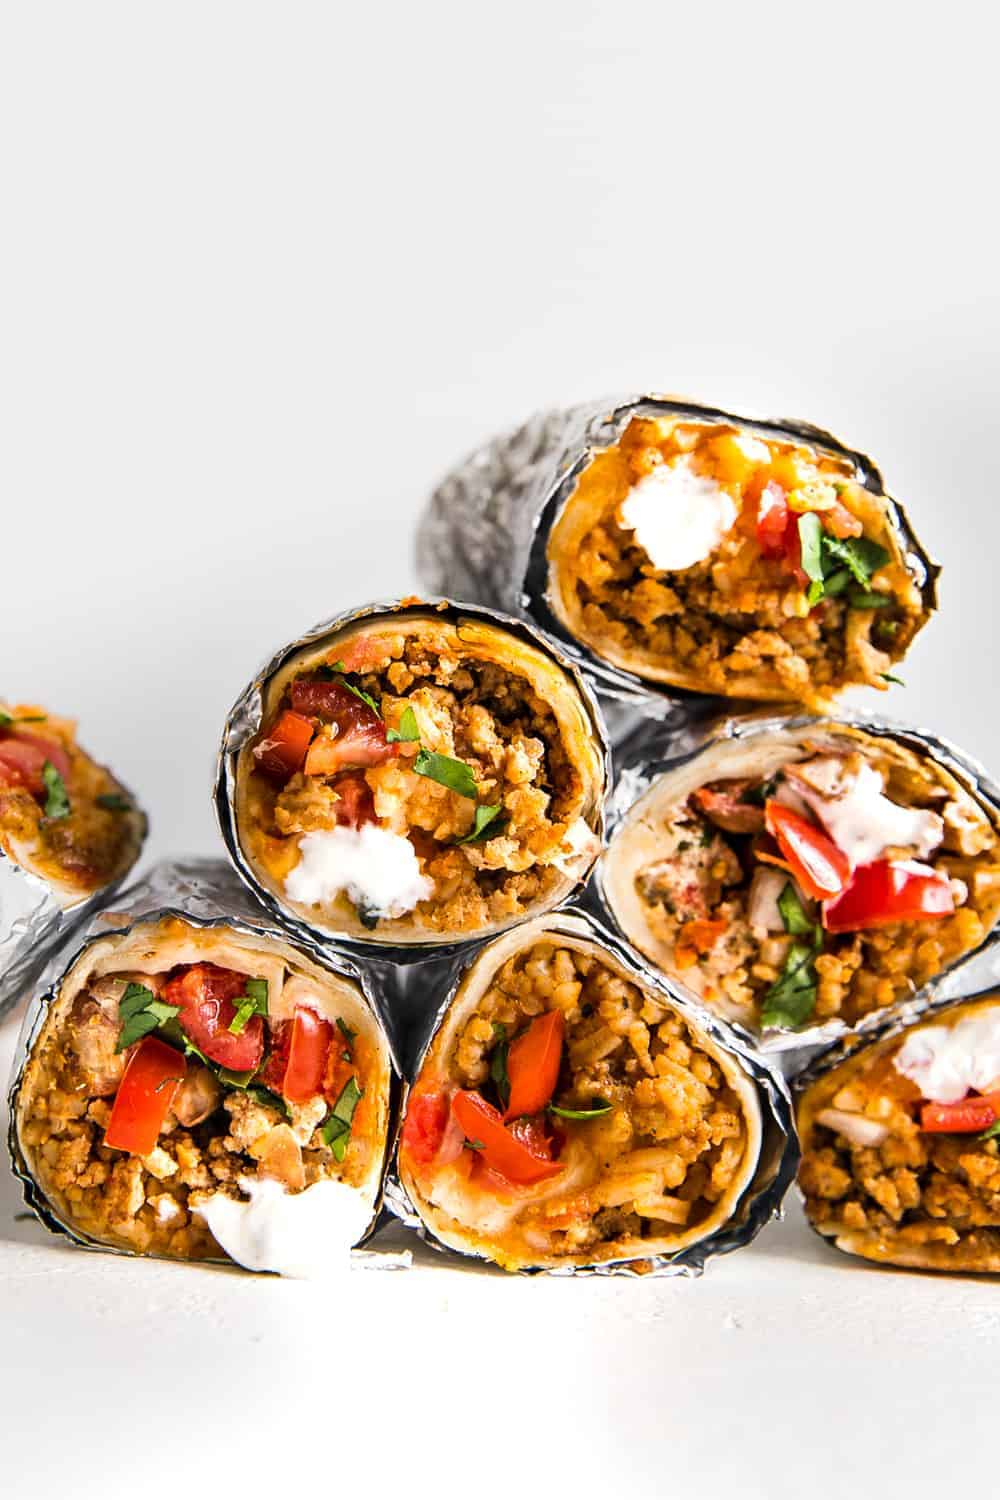 A pyramid of burritos rolled up in aluminum foil.